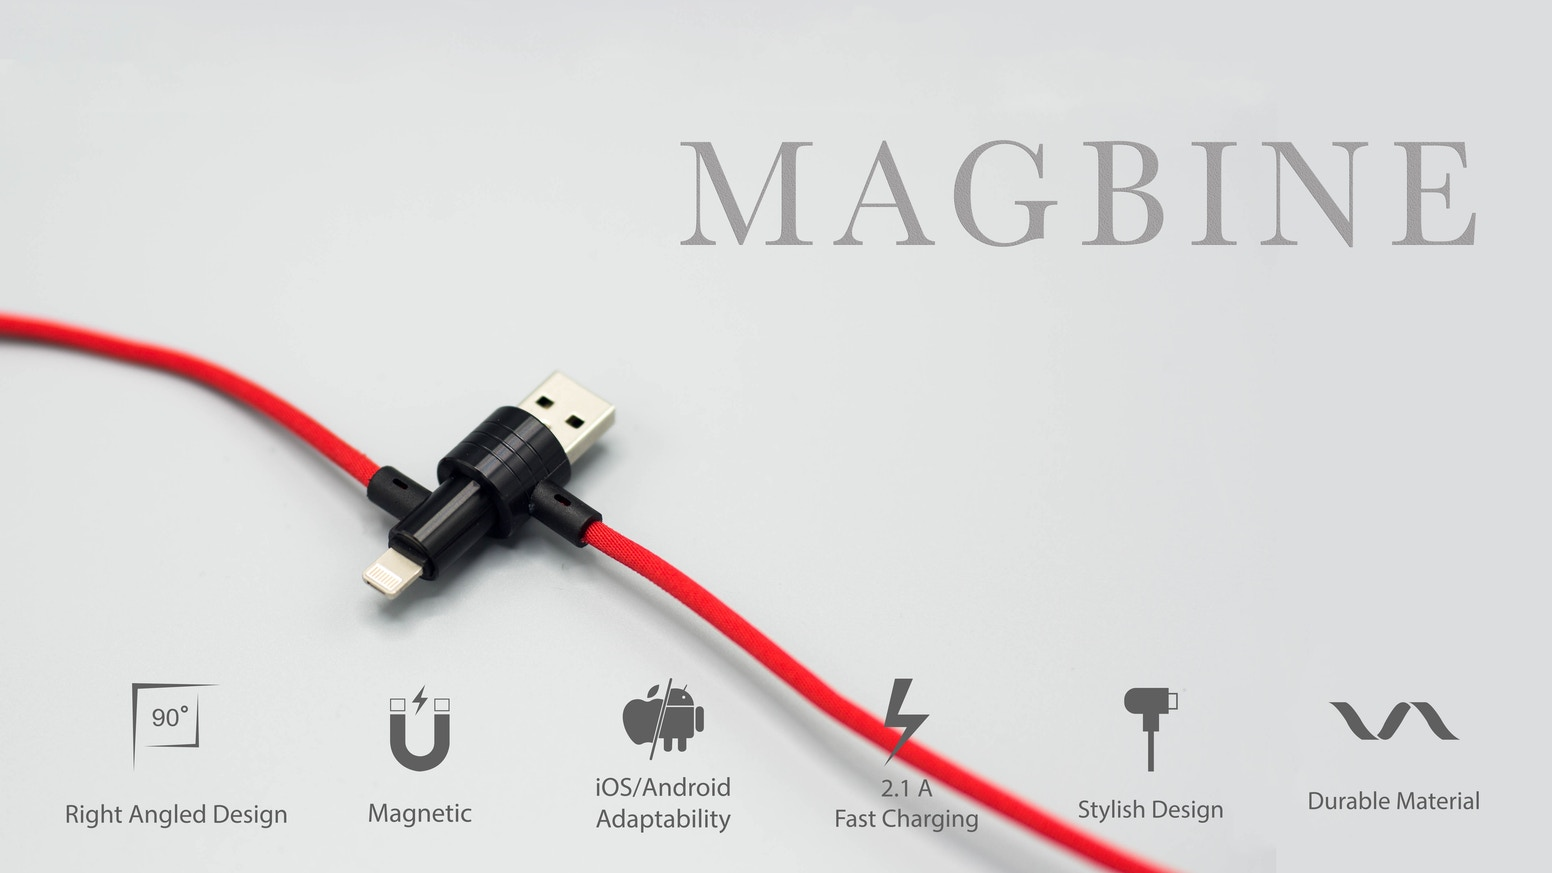 Magbine World S First Magnetic Cable For All Devices By